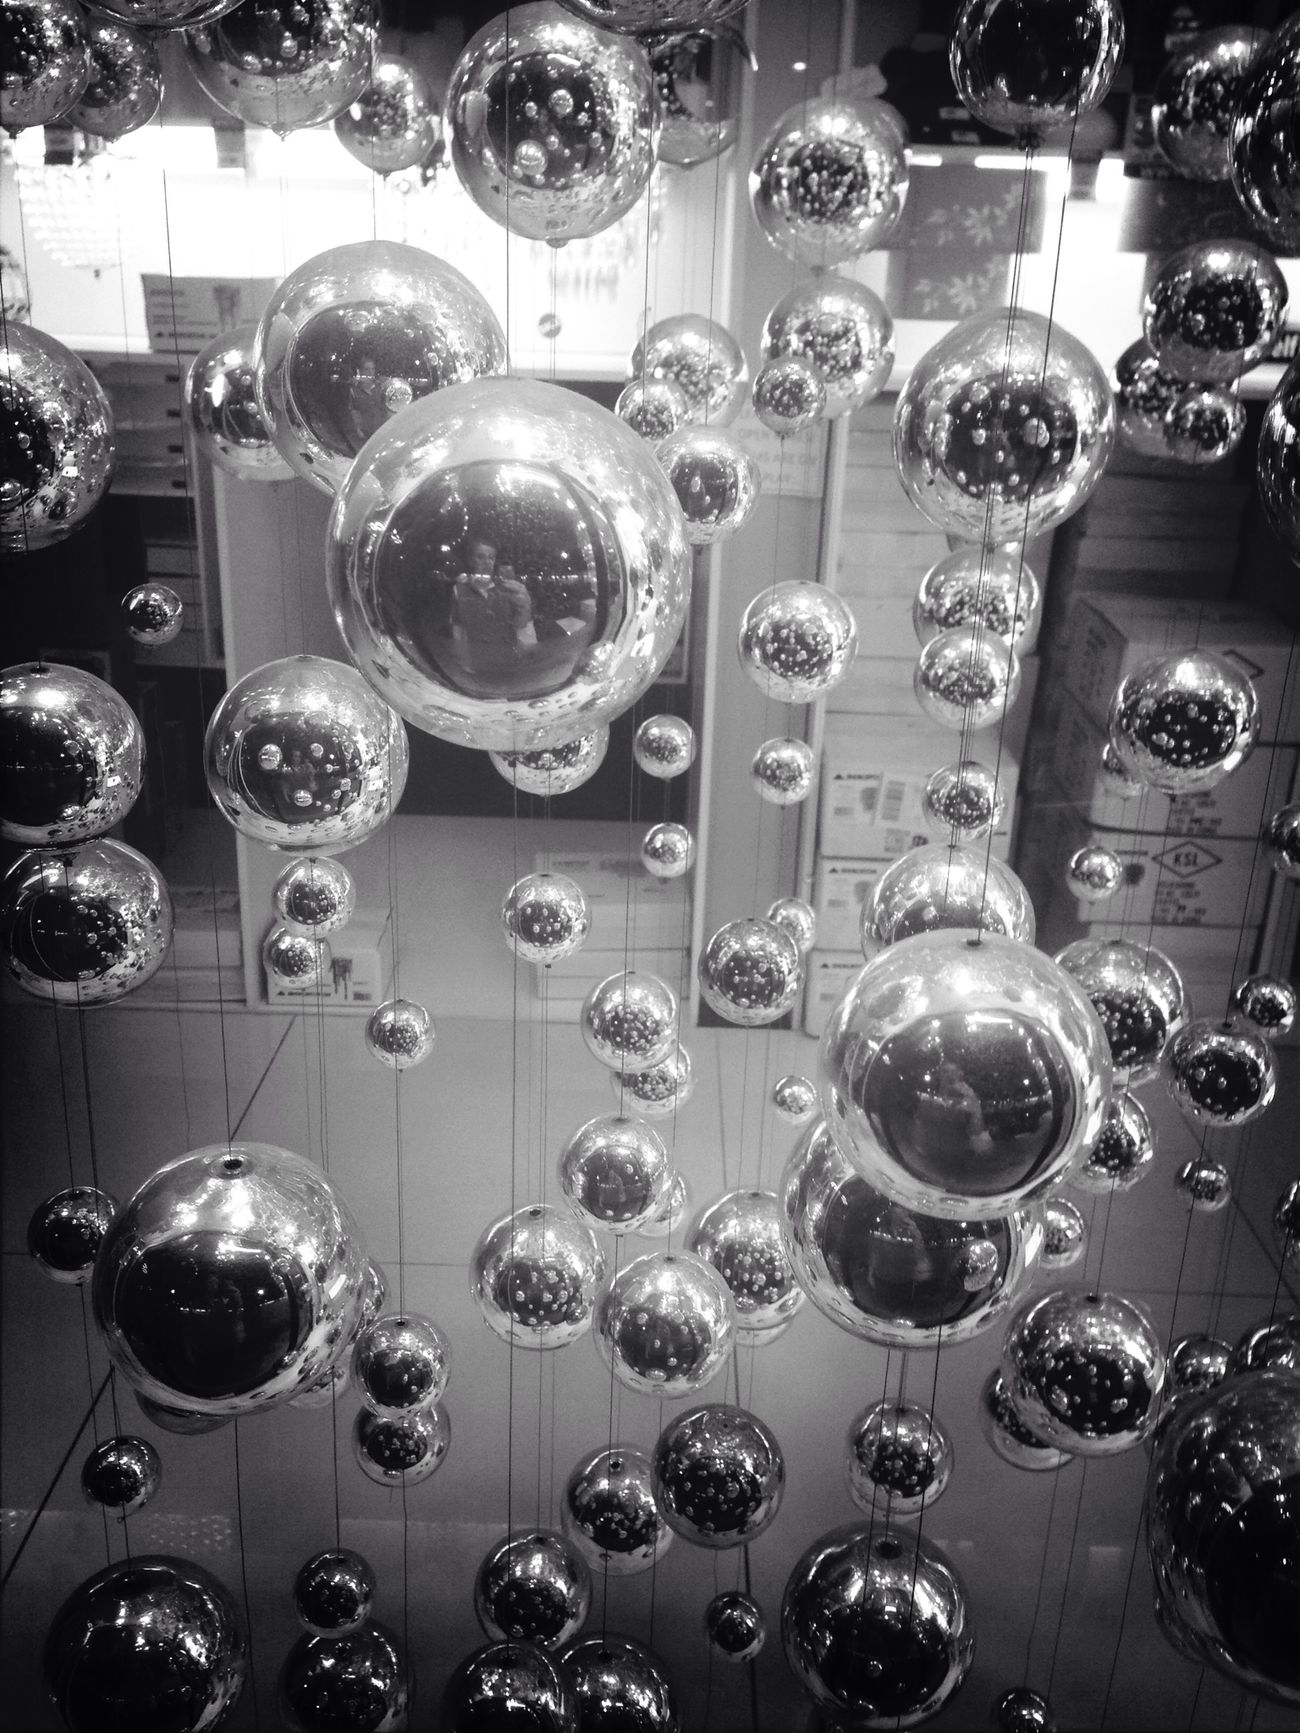 Afterdark Closing Time Mirror Mirrorballs